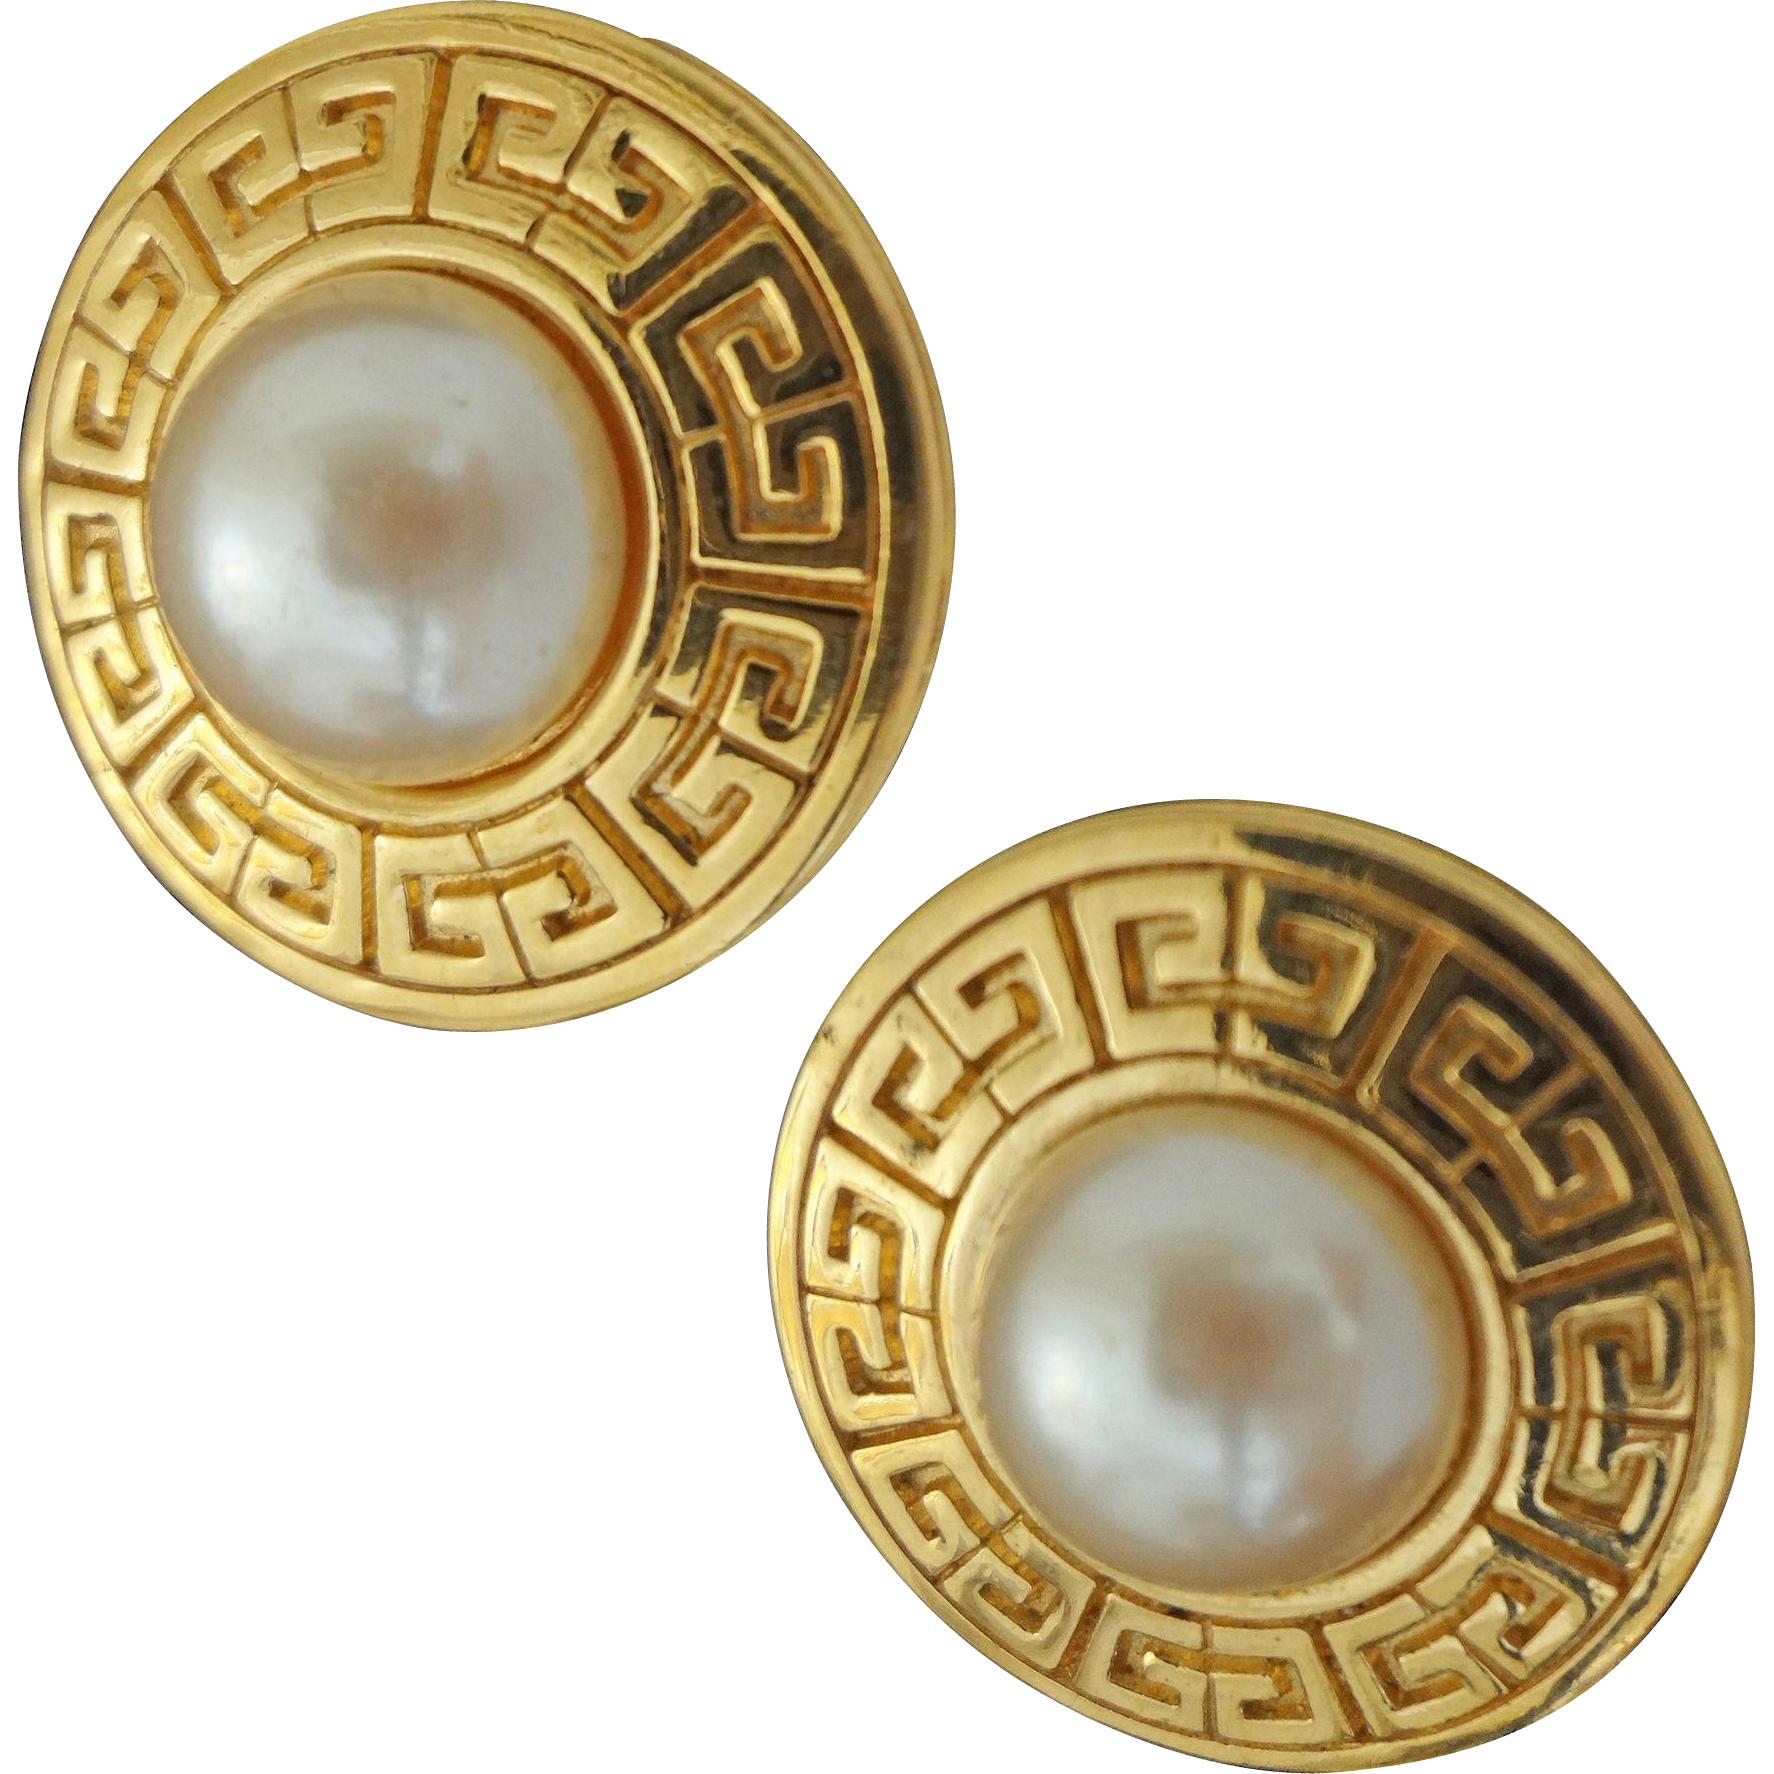 Pair Givenchy Paris Faux Pearls Clip-On Earrings Couture / Runway Style Costume Jewelry Signed - c. 1980's, France